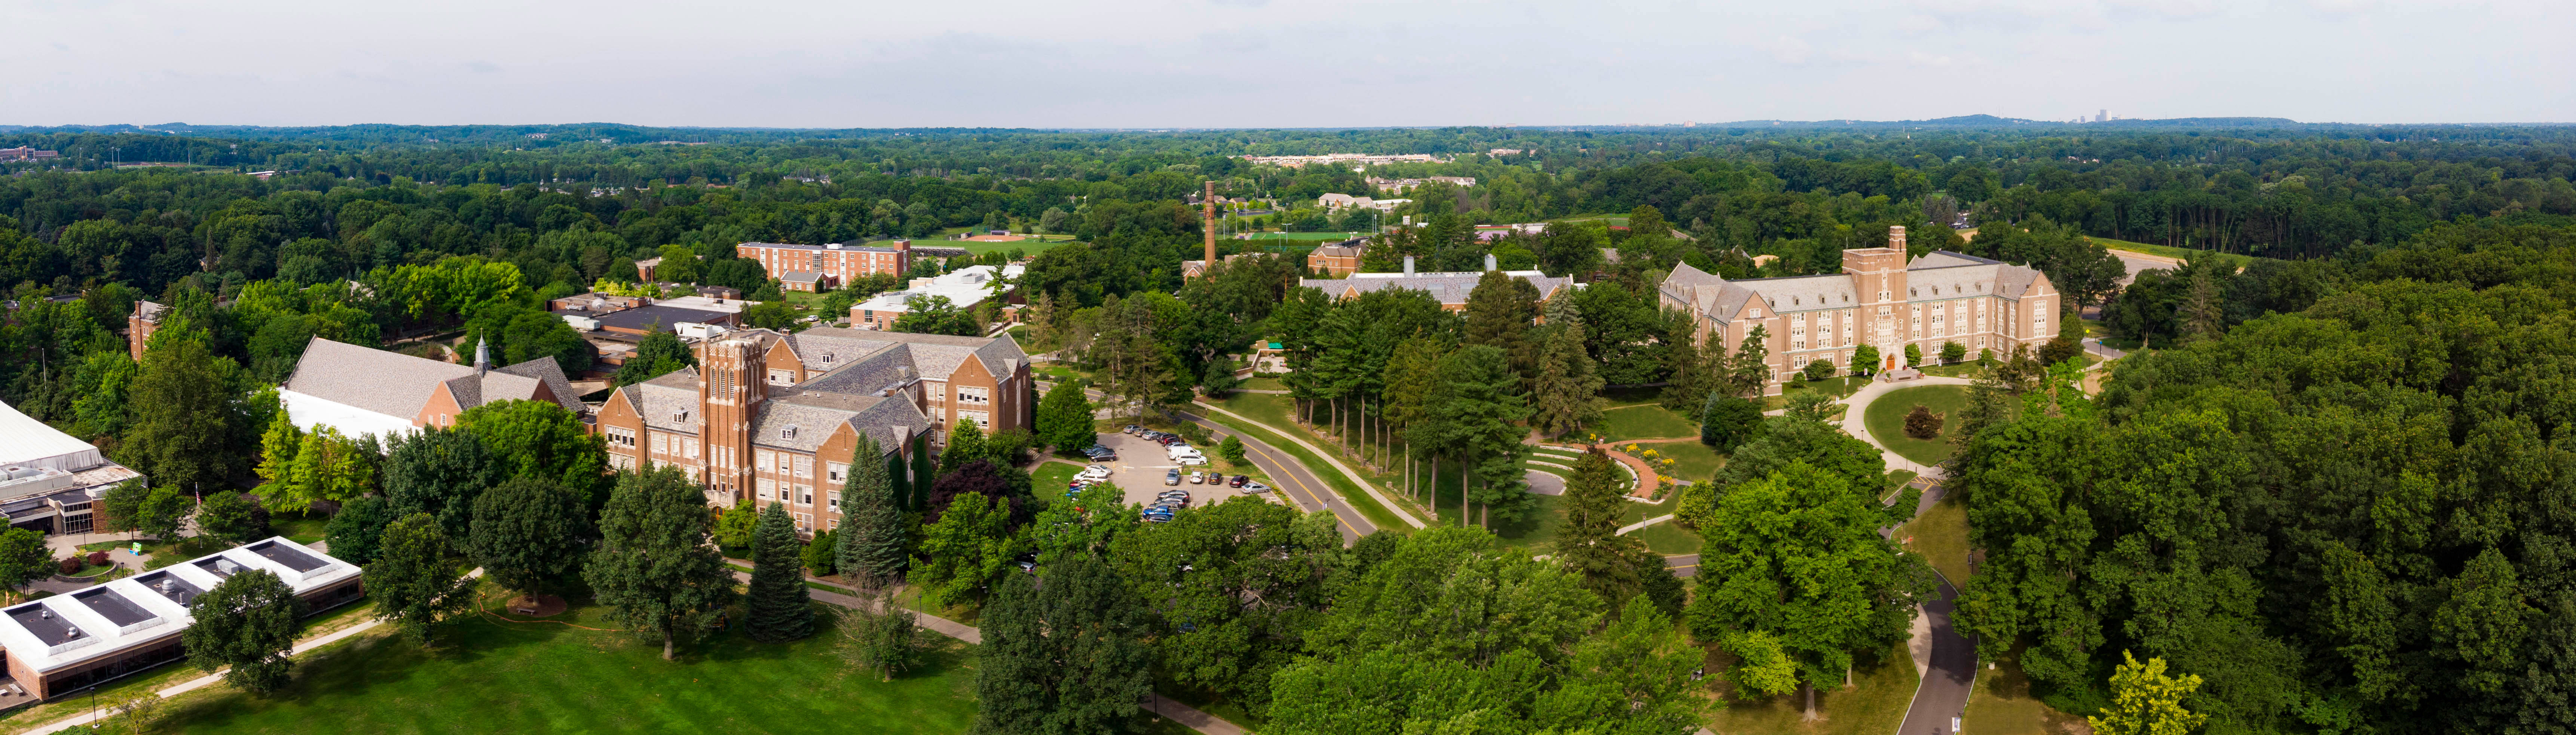 Nazareth College - The Princeton Review College Rankings